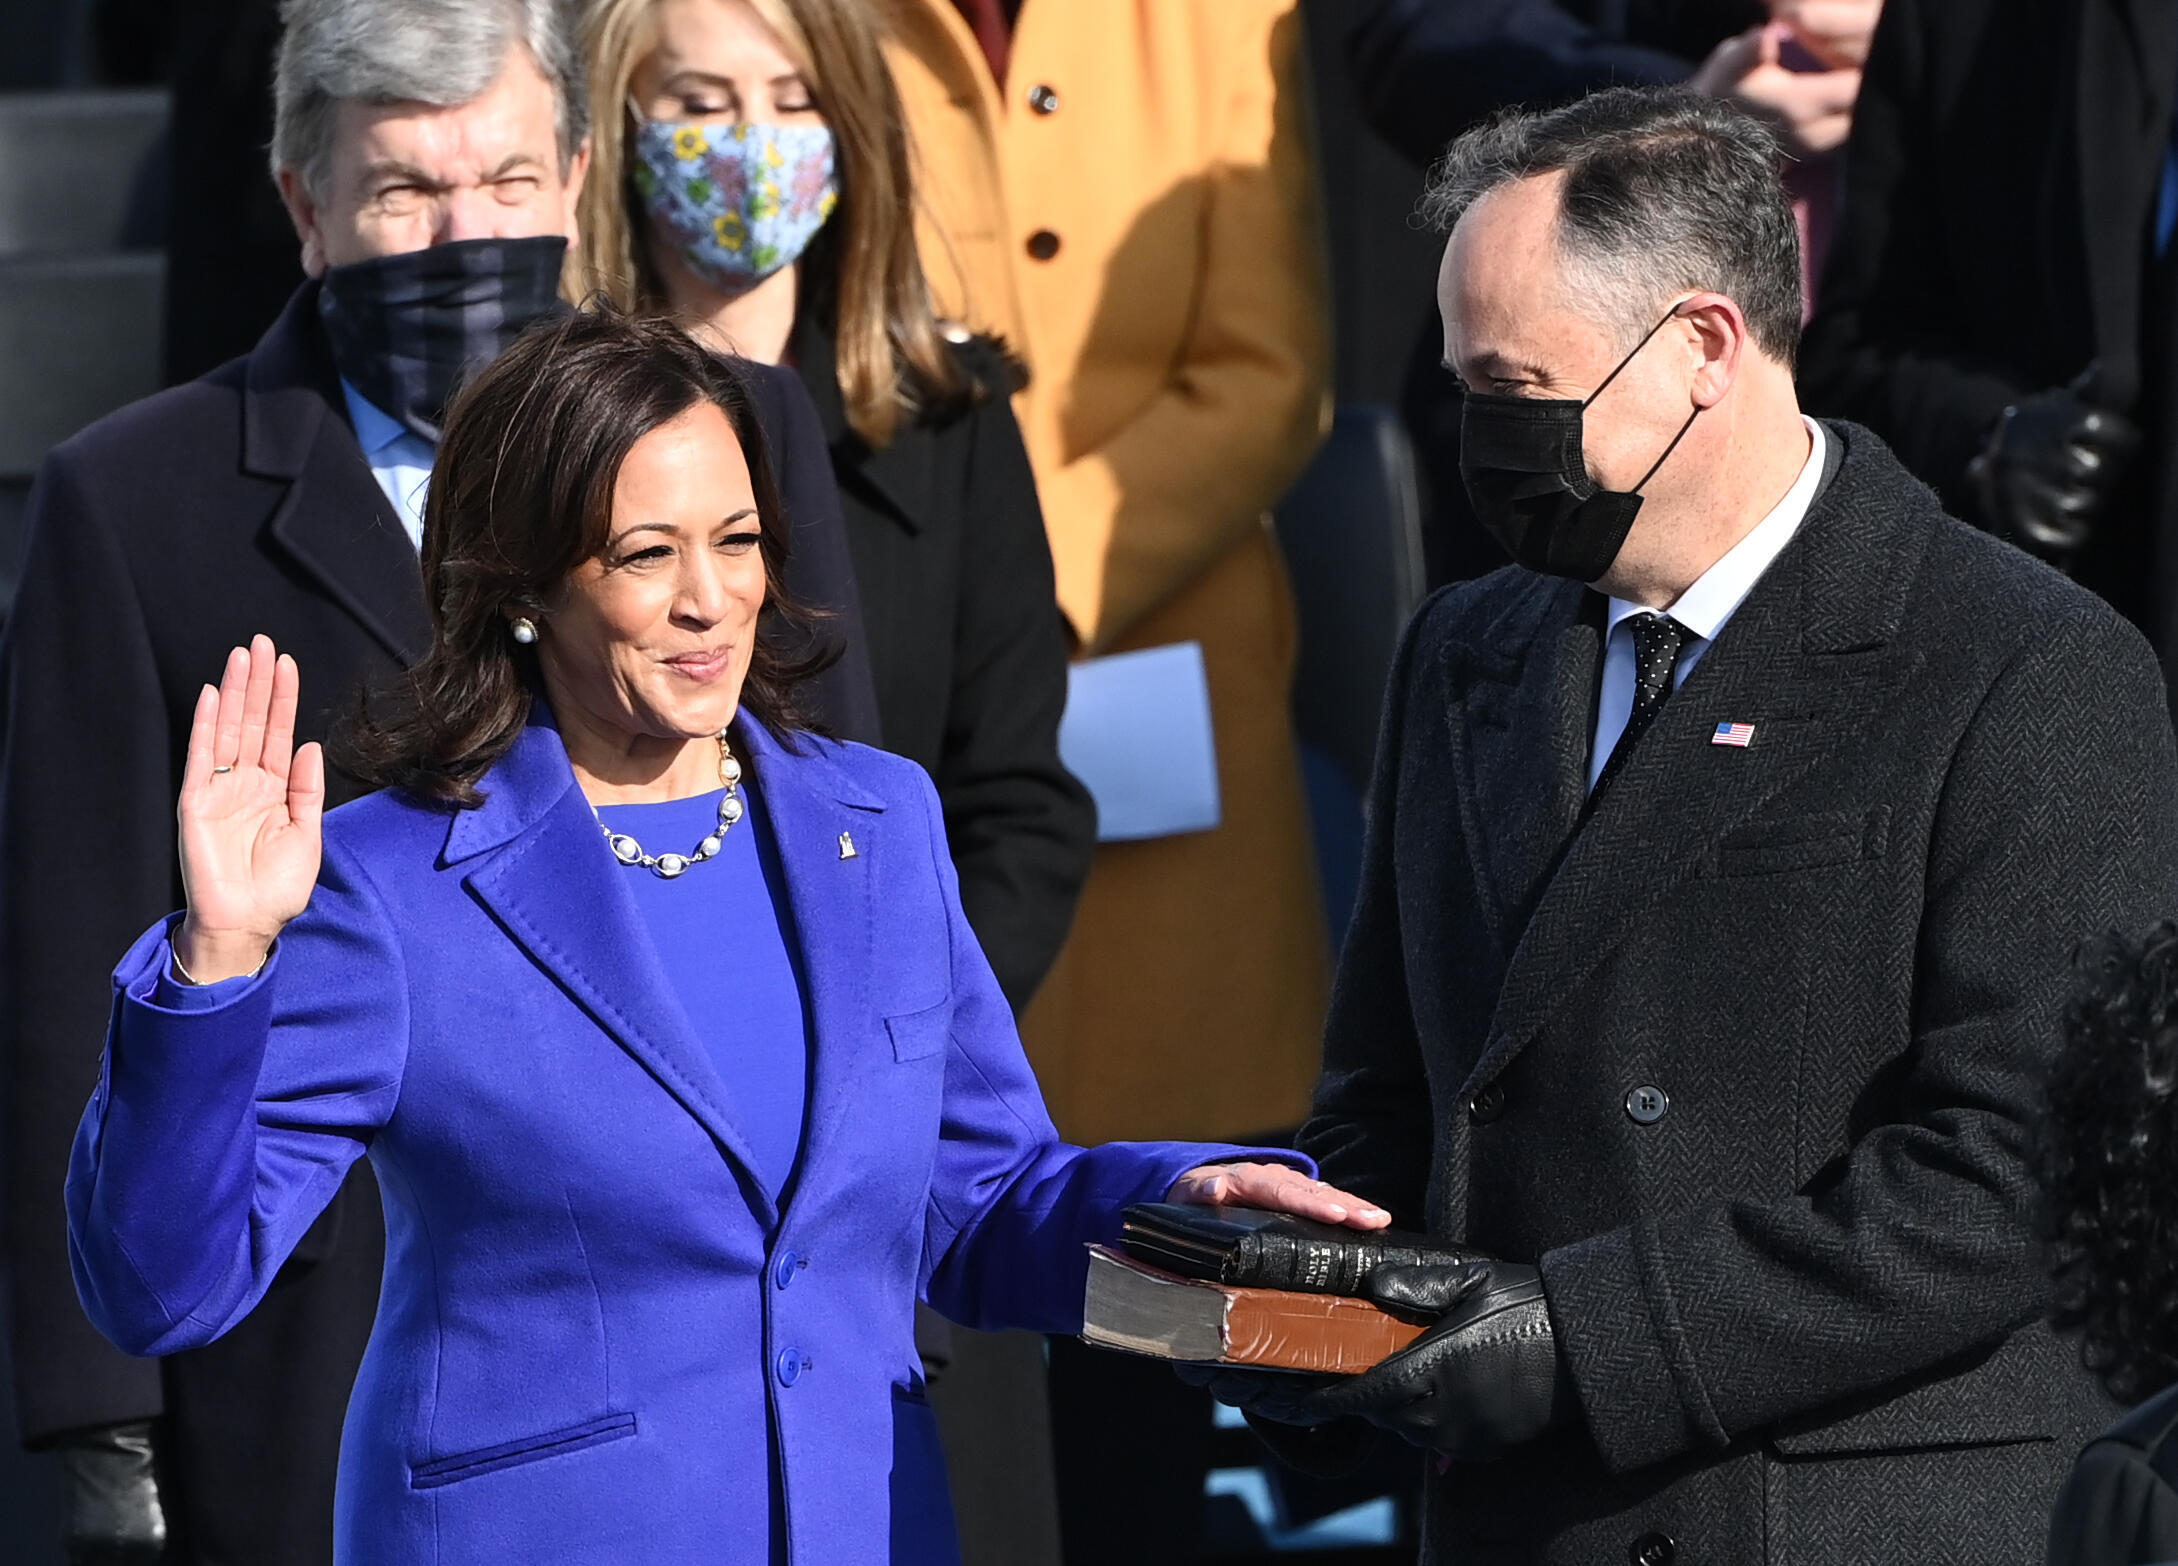 The purple of Kamala Harris during her swearing-in as Vice President of the United States symbolizes the two-party system mixing blue for Democrats and red for Republicans.